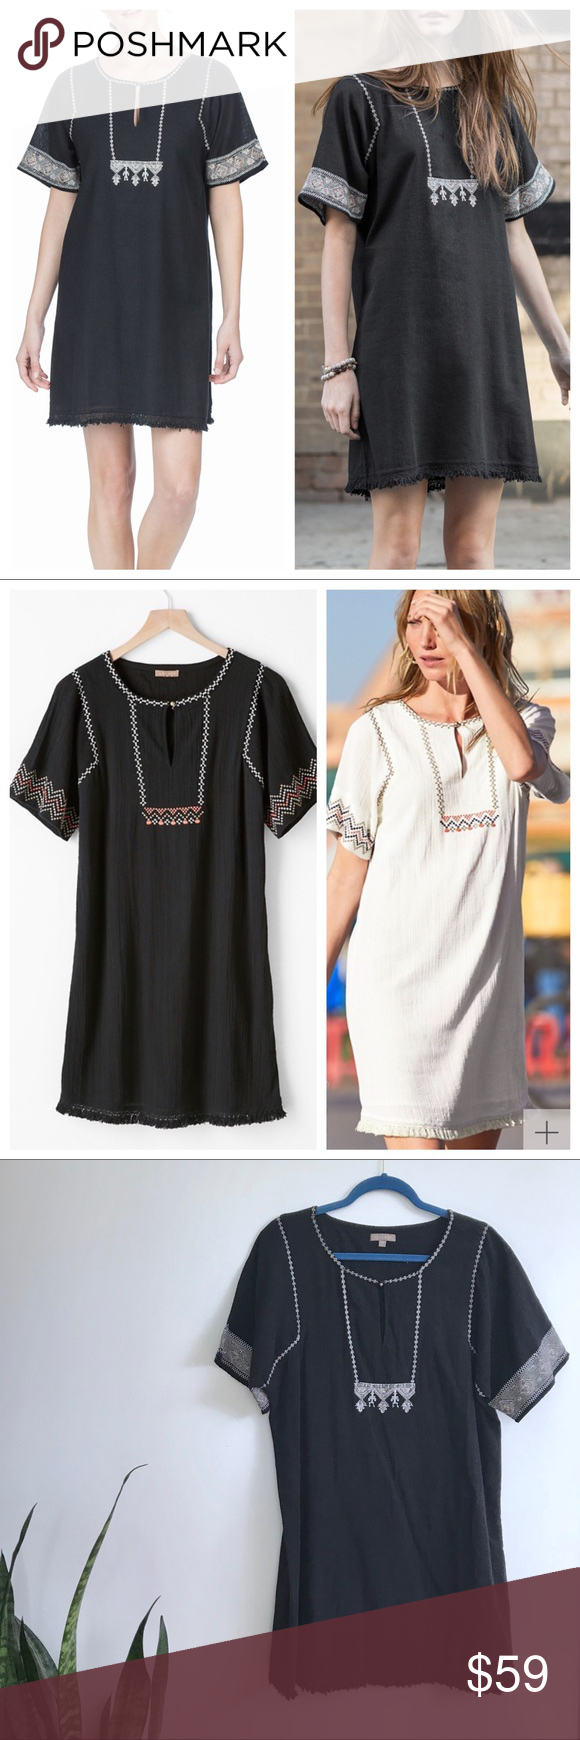 2da8e204b0825 Lilla P Woven Gauze Embroidered Short Sleeve Dress Size L Excellent  preowned condition Intricate embroidery gives this breezy dress  globe-trotting style.